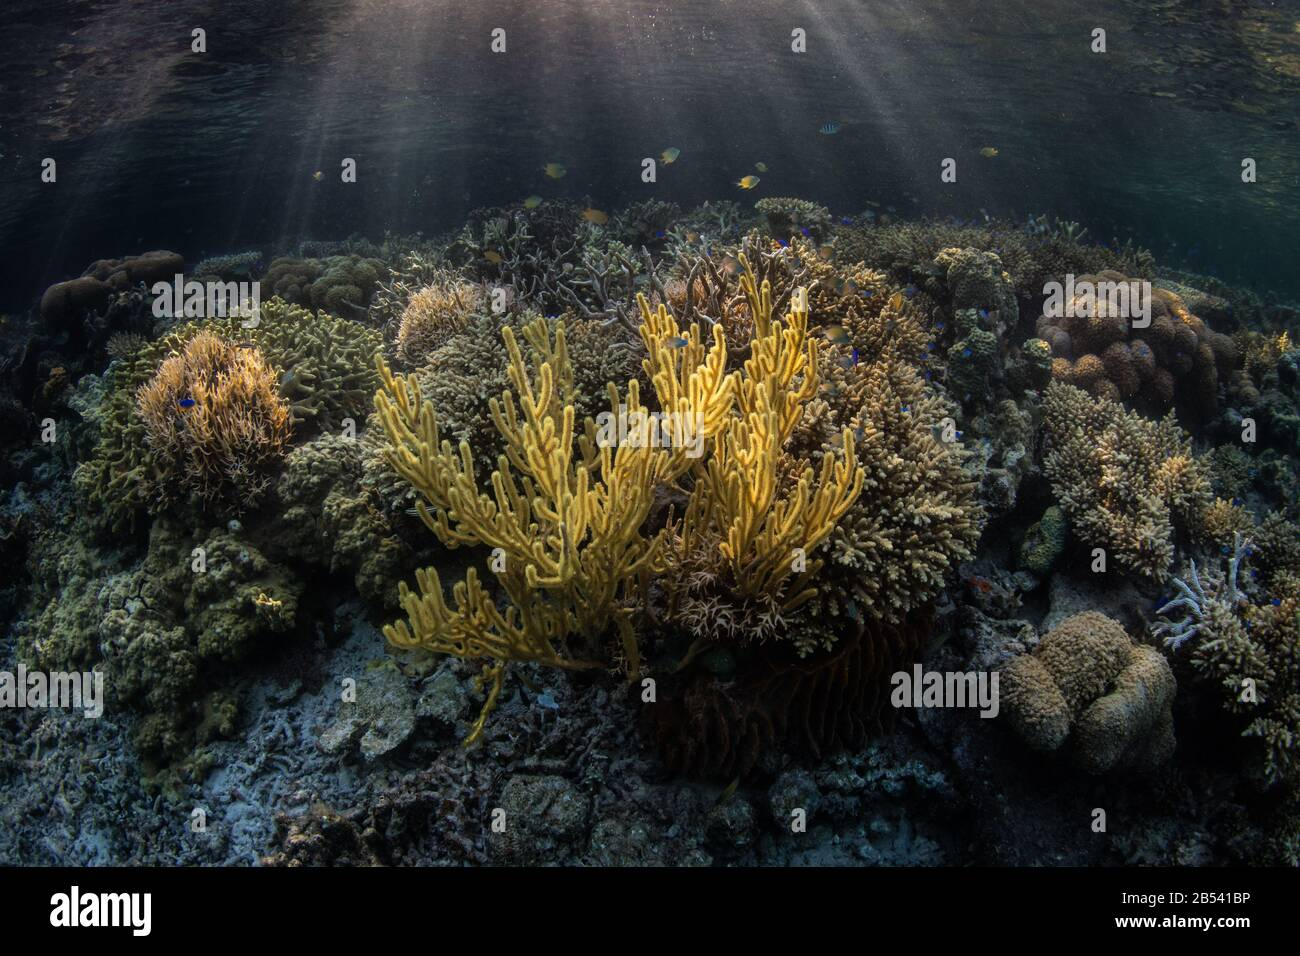 A gorgonian and many other types of coral grow in the shallows near a mangrove forest in Raja Ampat. This area is known for high marine biodiversity. Stock Photo